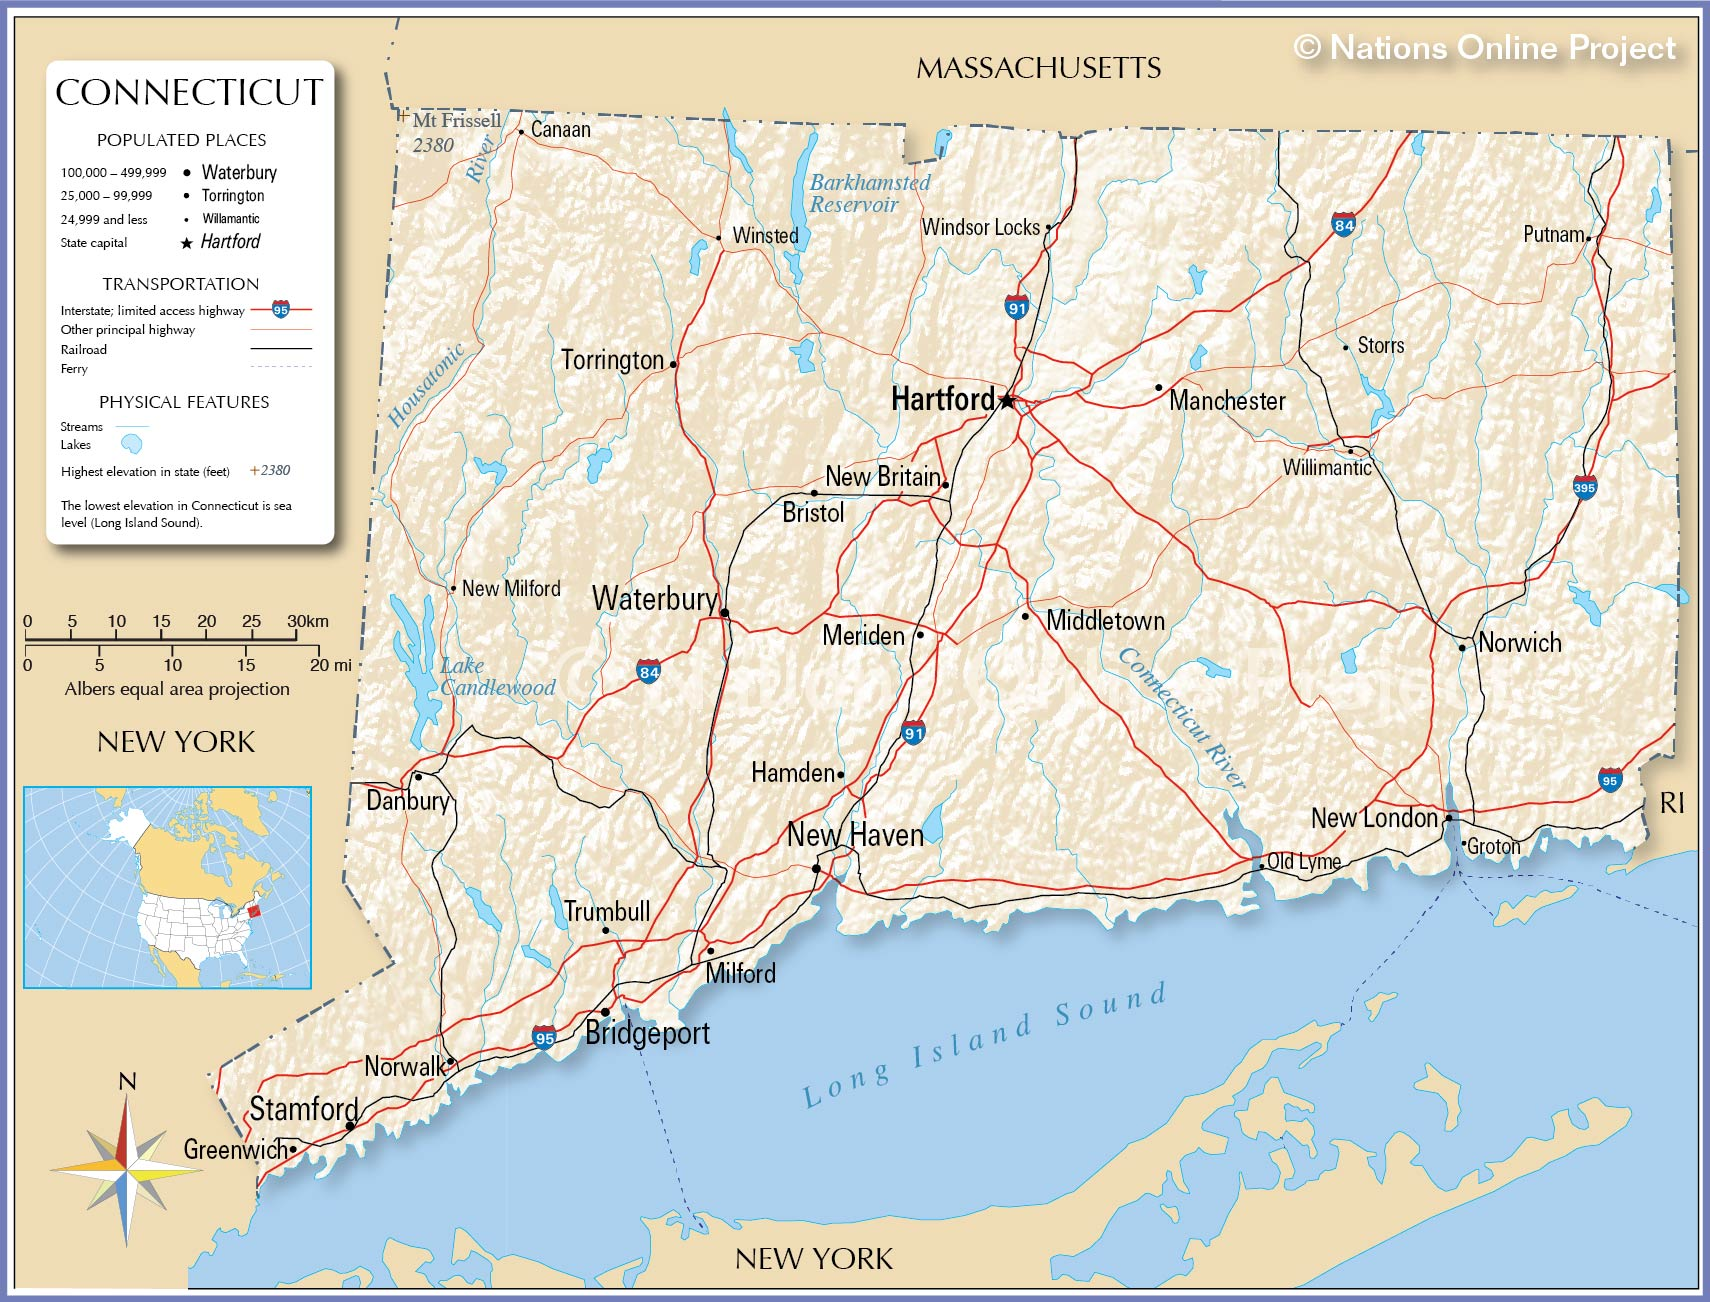 Reference Map Of Connecticut USA Nations Online Project - Map usa connecticut